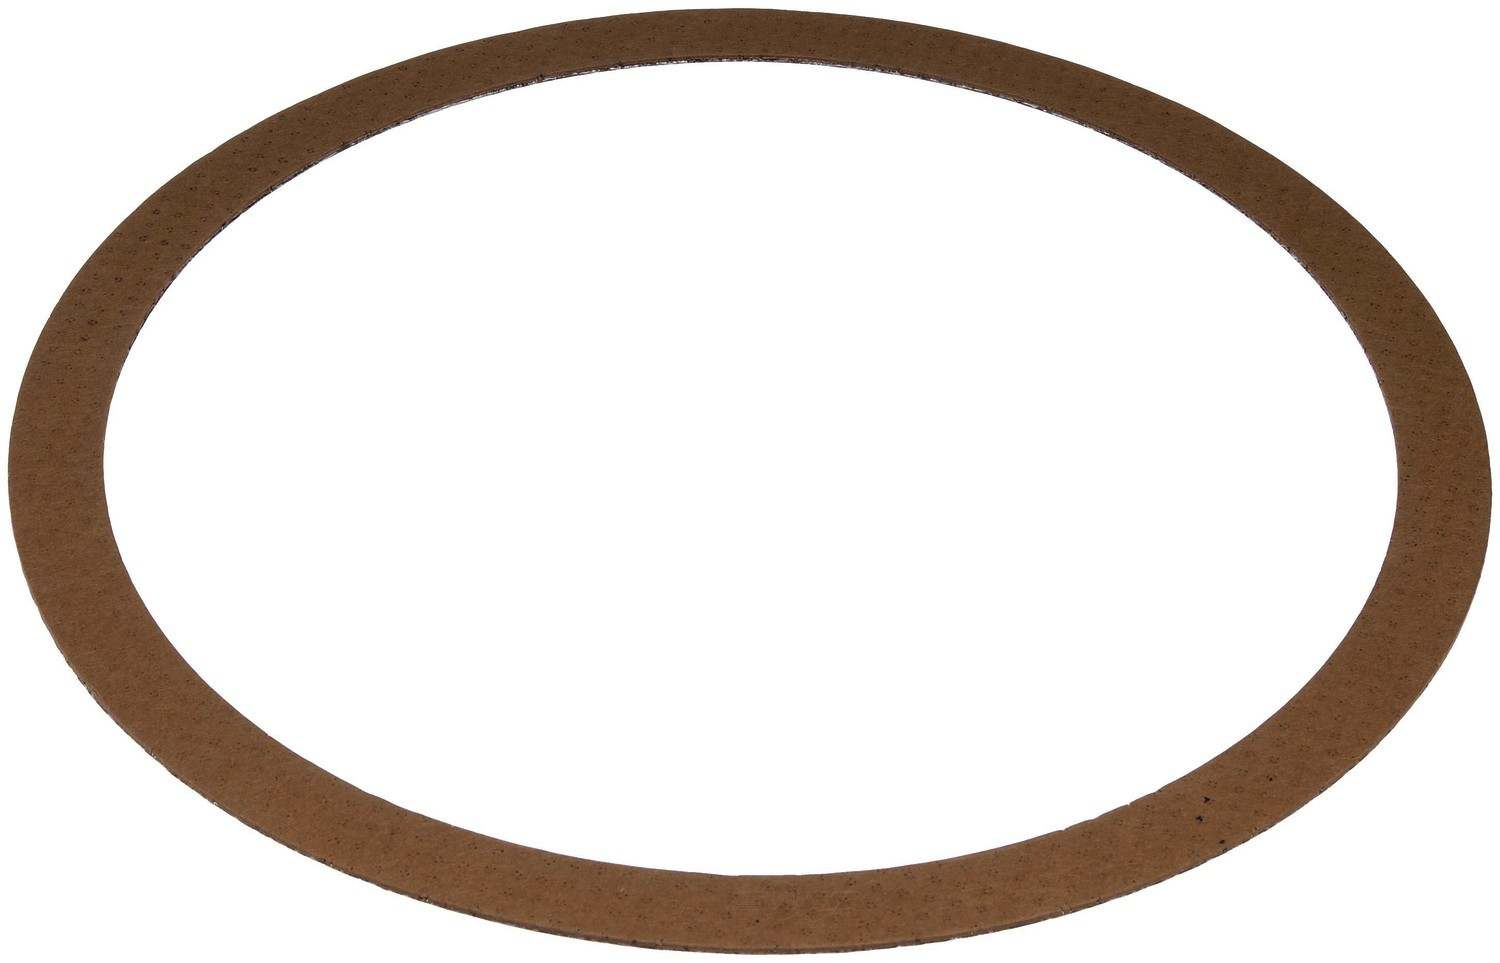 DORMAN - HD SOLUTIONS - Diesel Particulate Filter (DPF) Gasket - DHD 674-9008